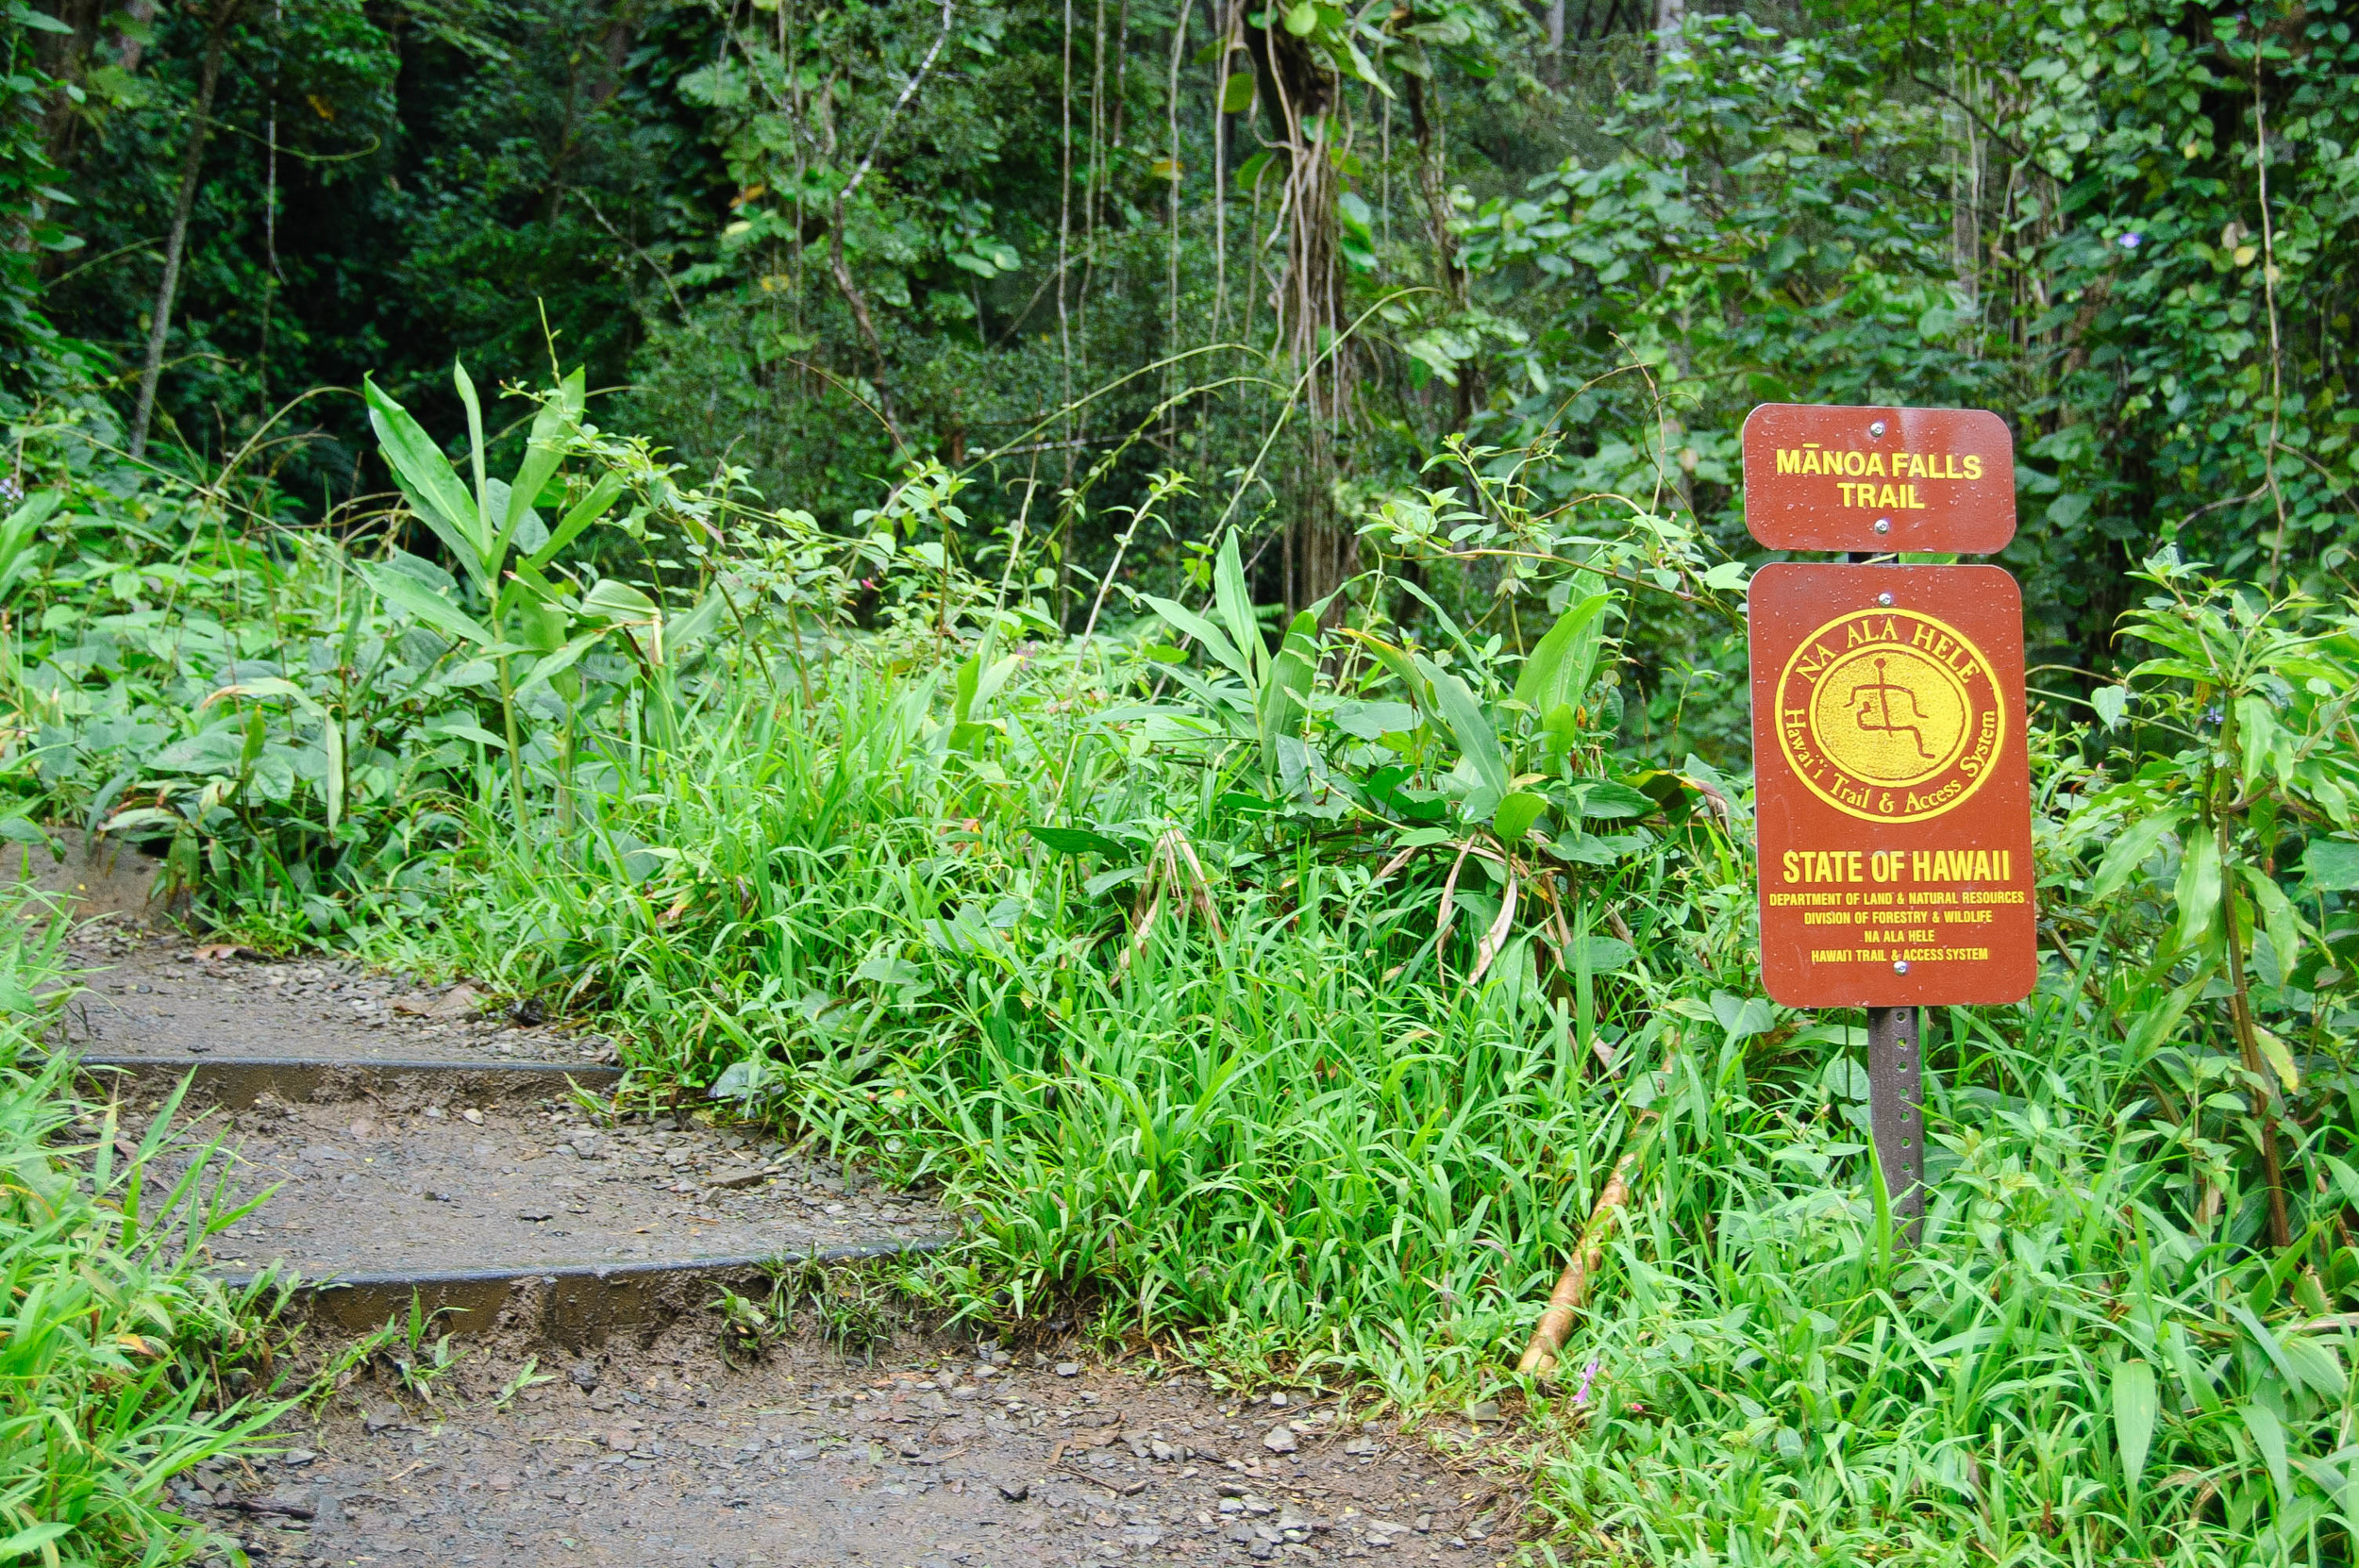 ManoaFalls_Hawaii_Entrance